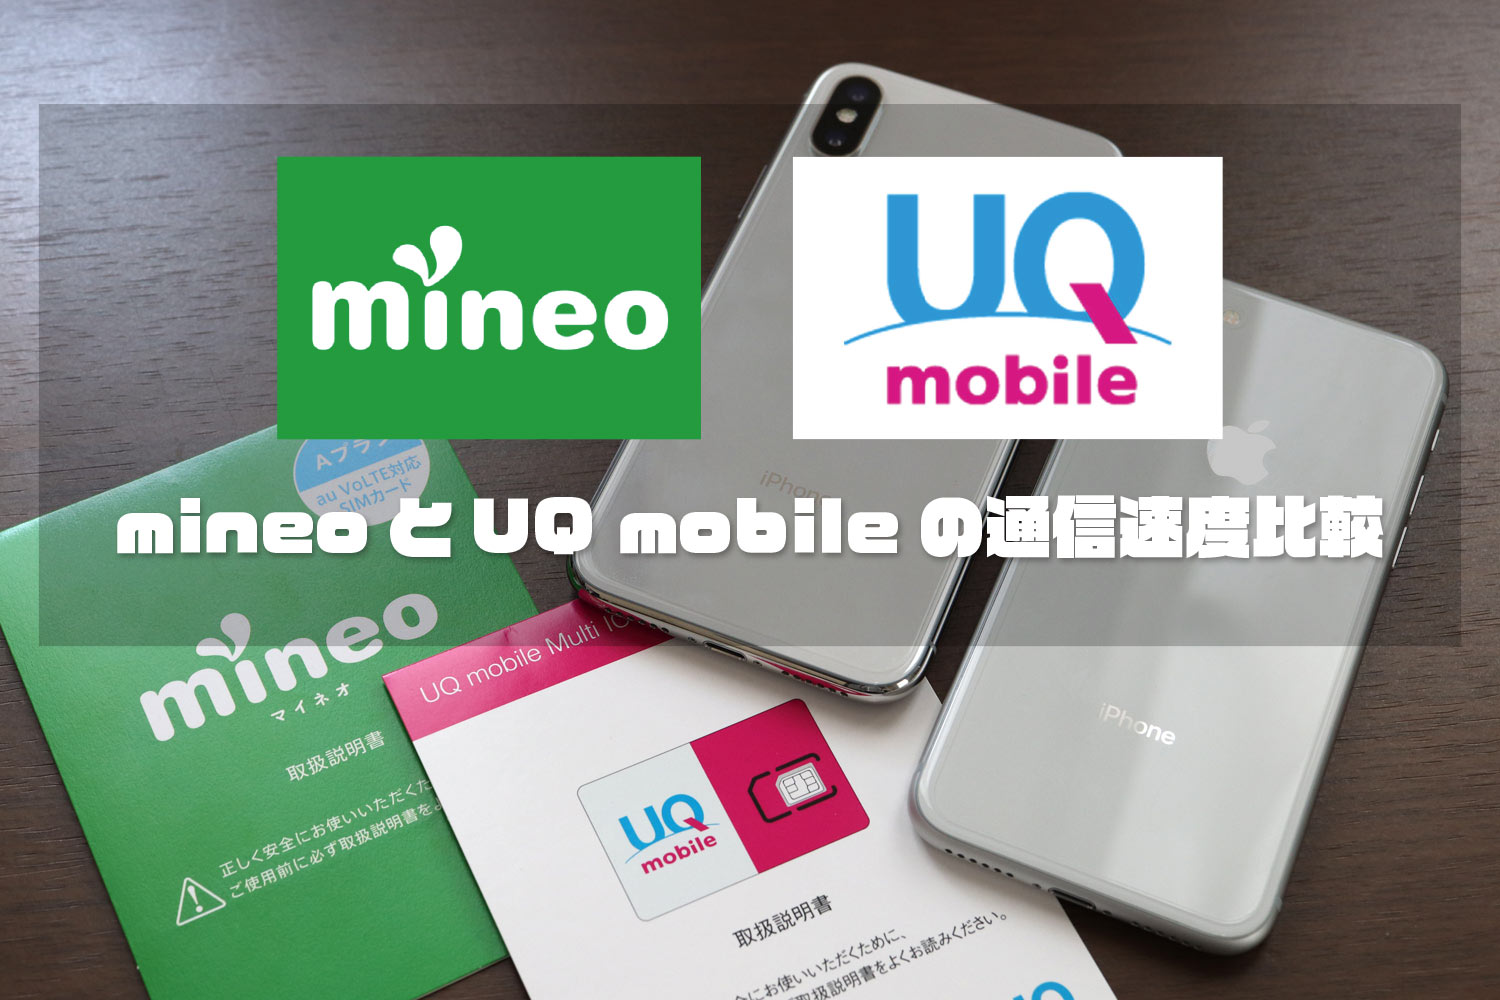 mineoとUQ mobile 通信速度比較